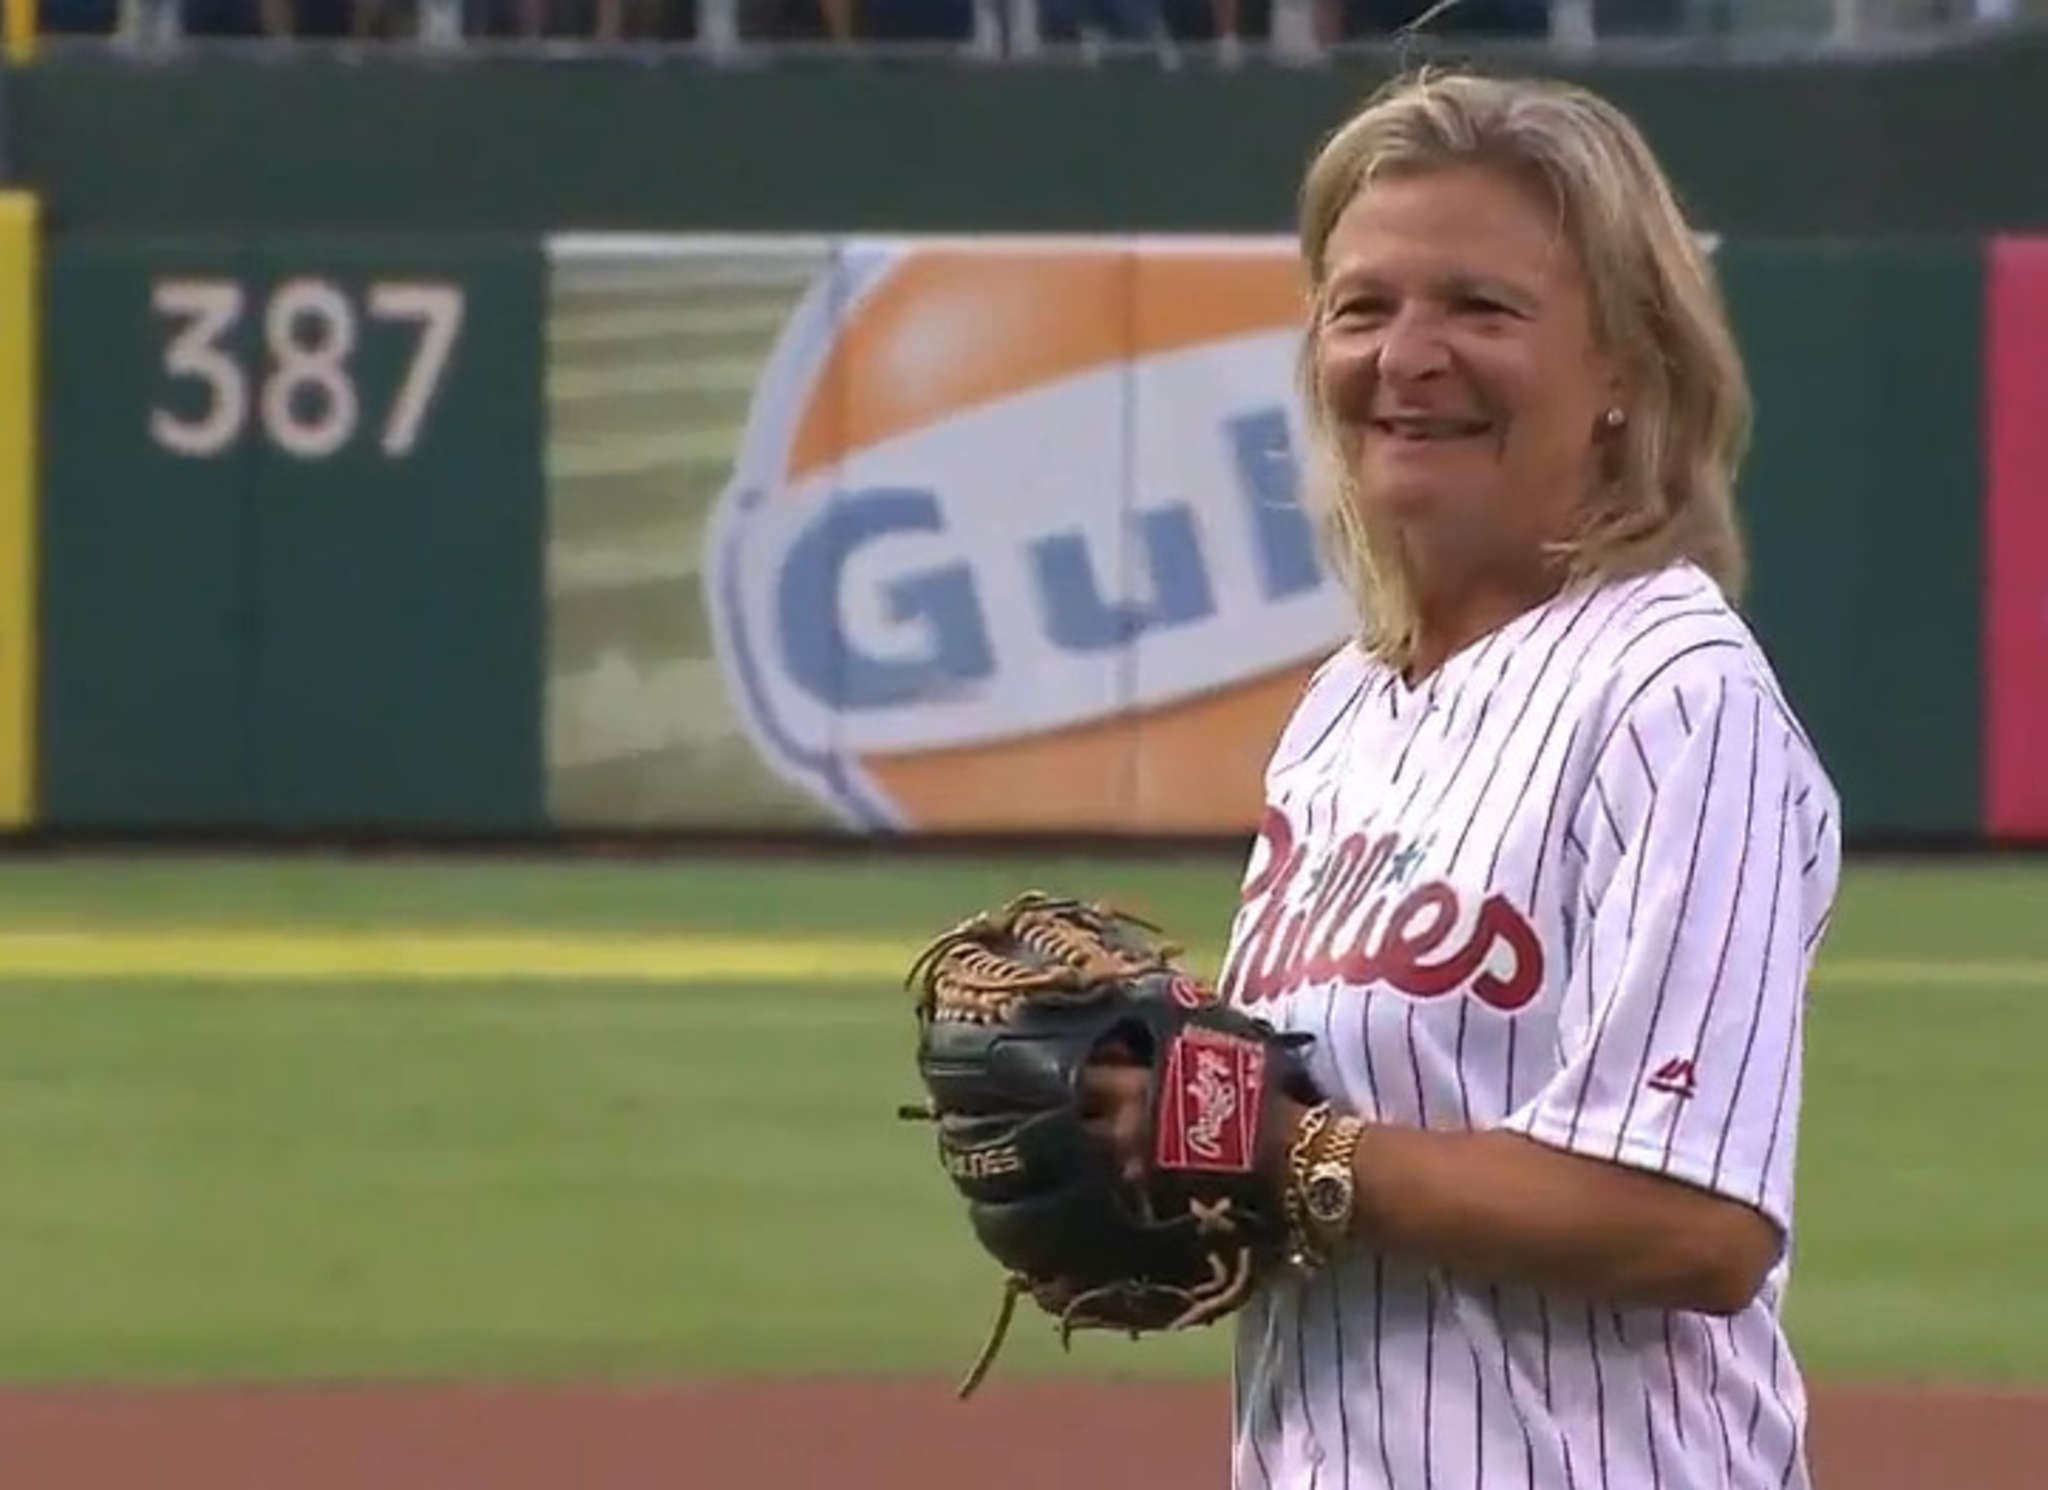 Lisa Scottoline throws out the first pitch at Ladies Night with the Philadelphia Phillies on Aug. 20.